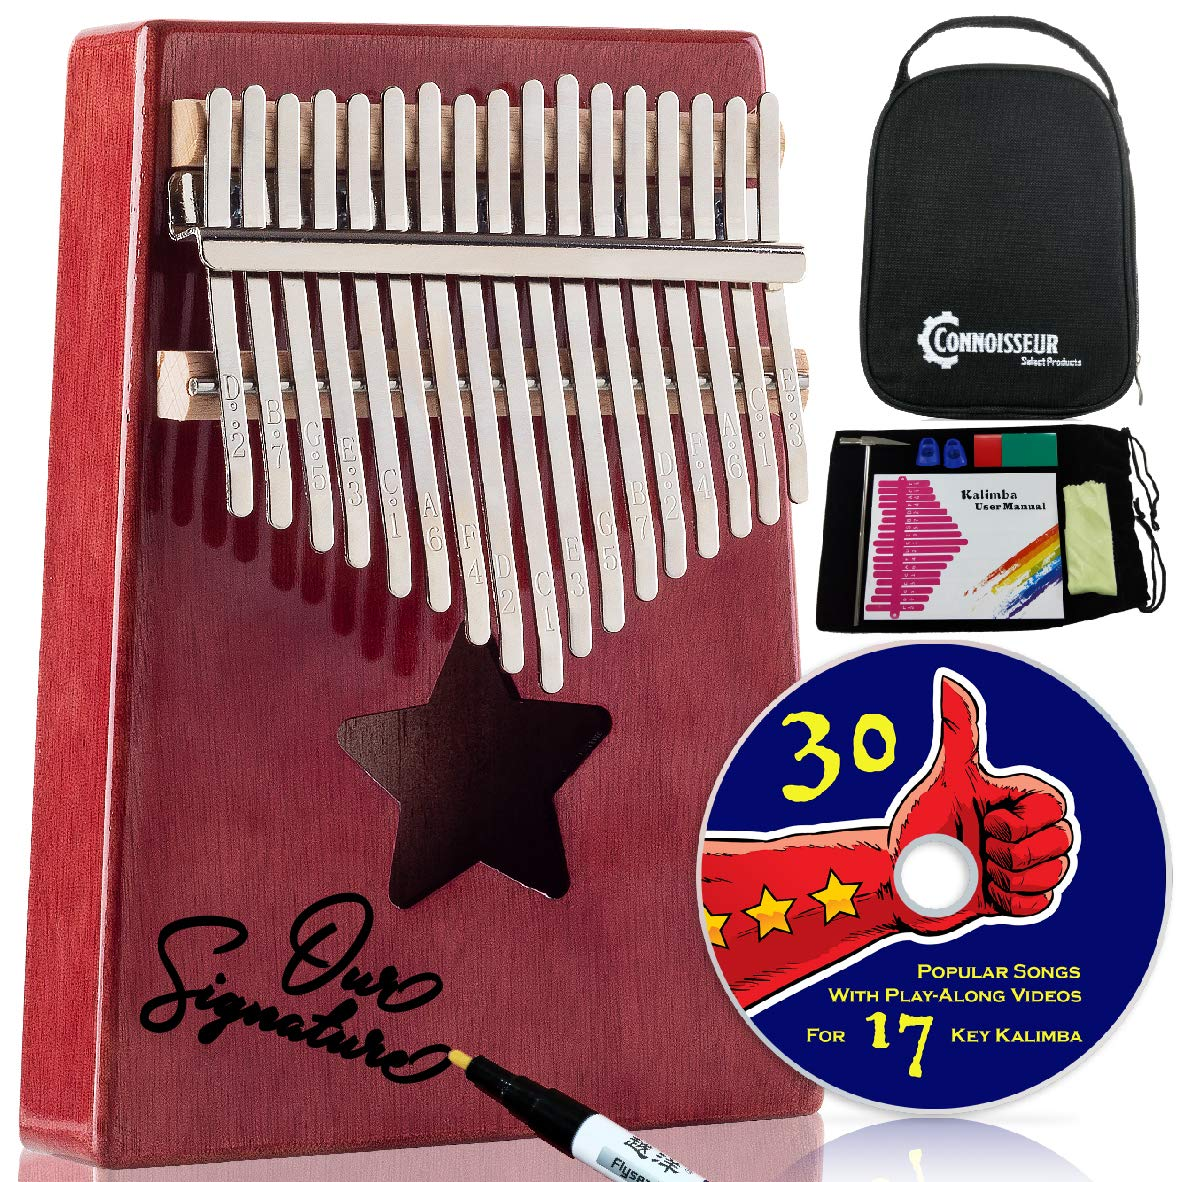 Kalimba 17 Key Thumb Piano - Musical instruments for adults and kids with all accessories, free music e-book and play along videos - Best relaxation gifts